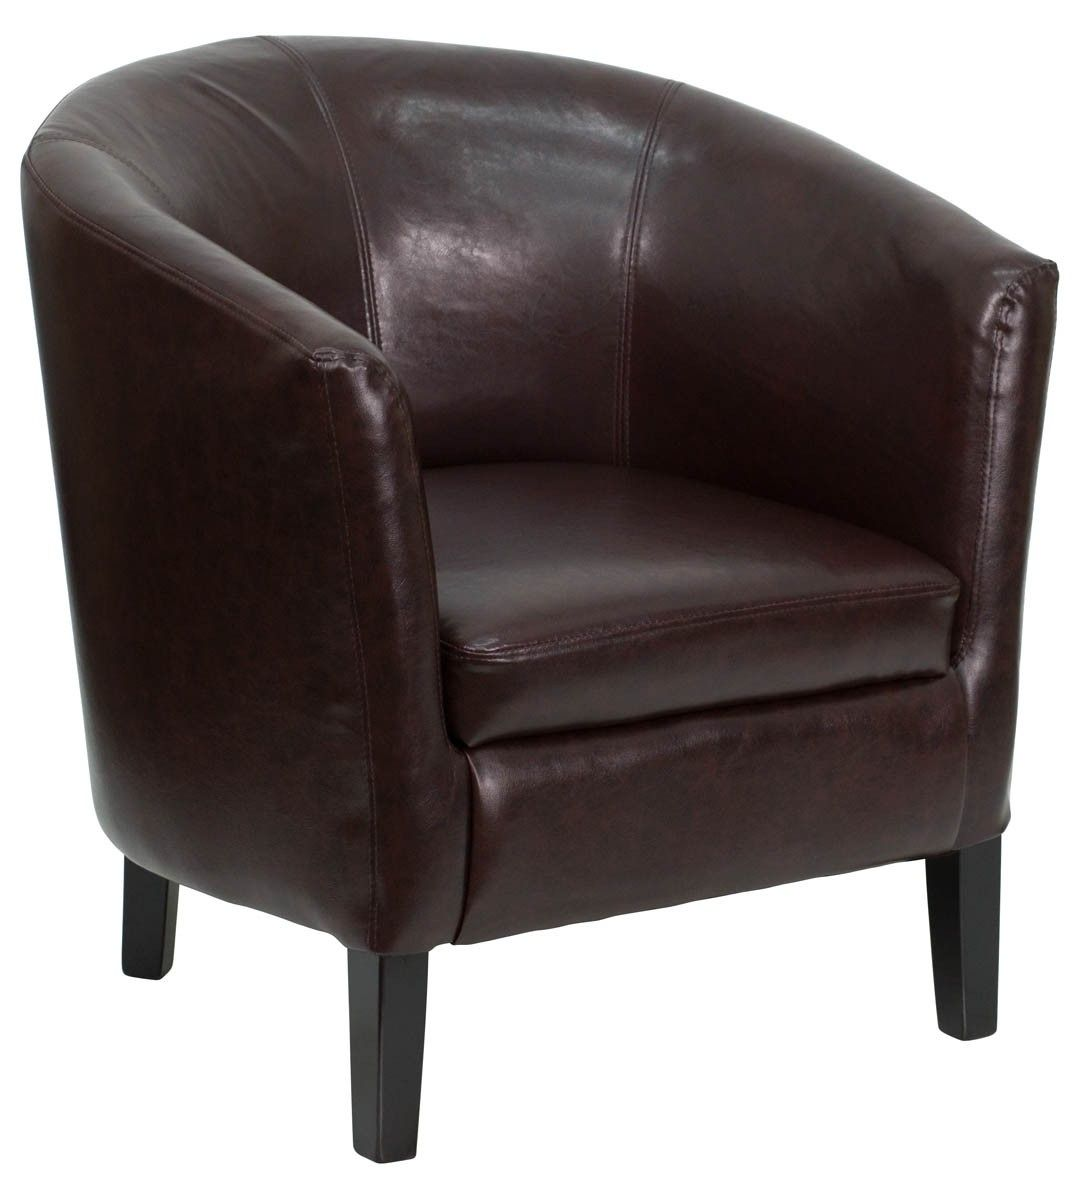 Leather Office Guest Chairs Home Furniture Sets Check More At Http